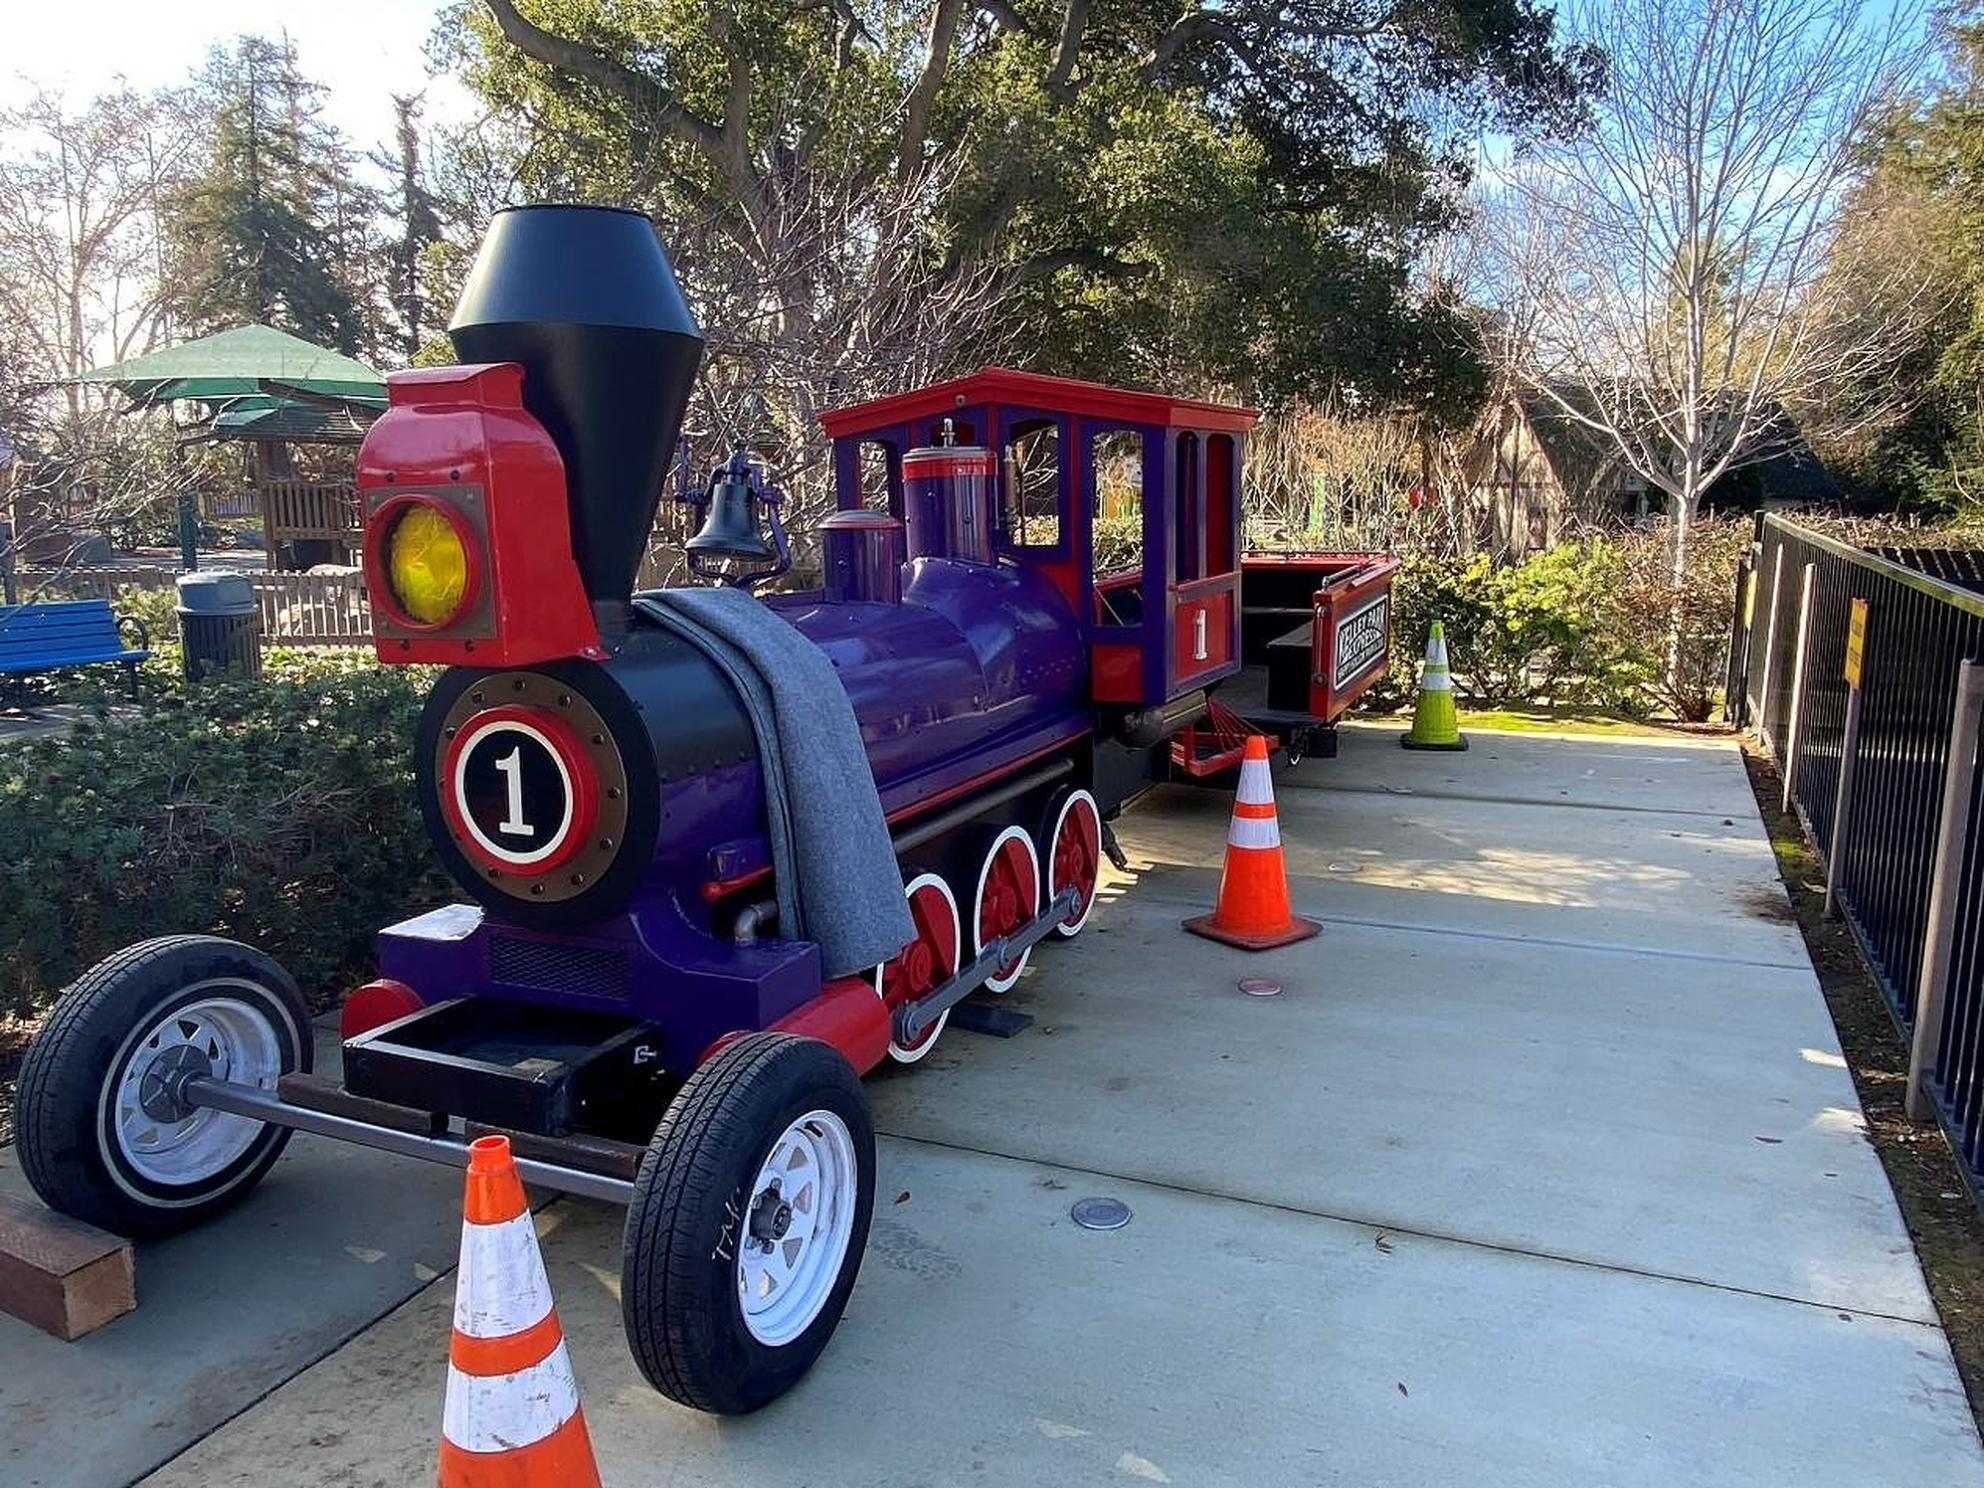 Train ride upgrade at Happy Hollow Park & Zoo